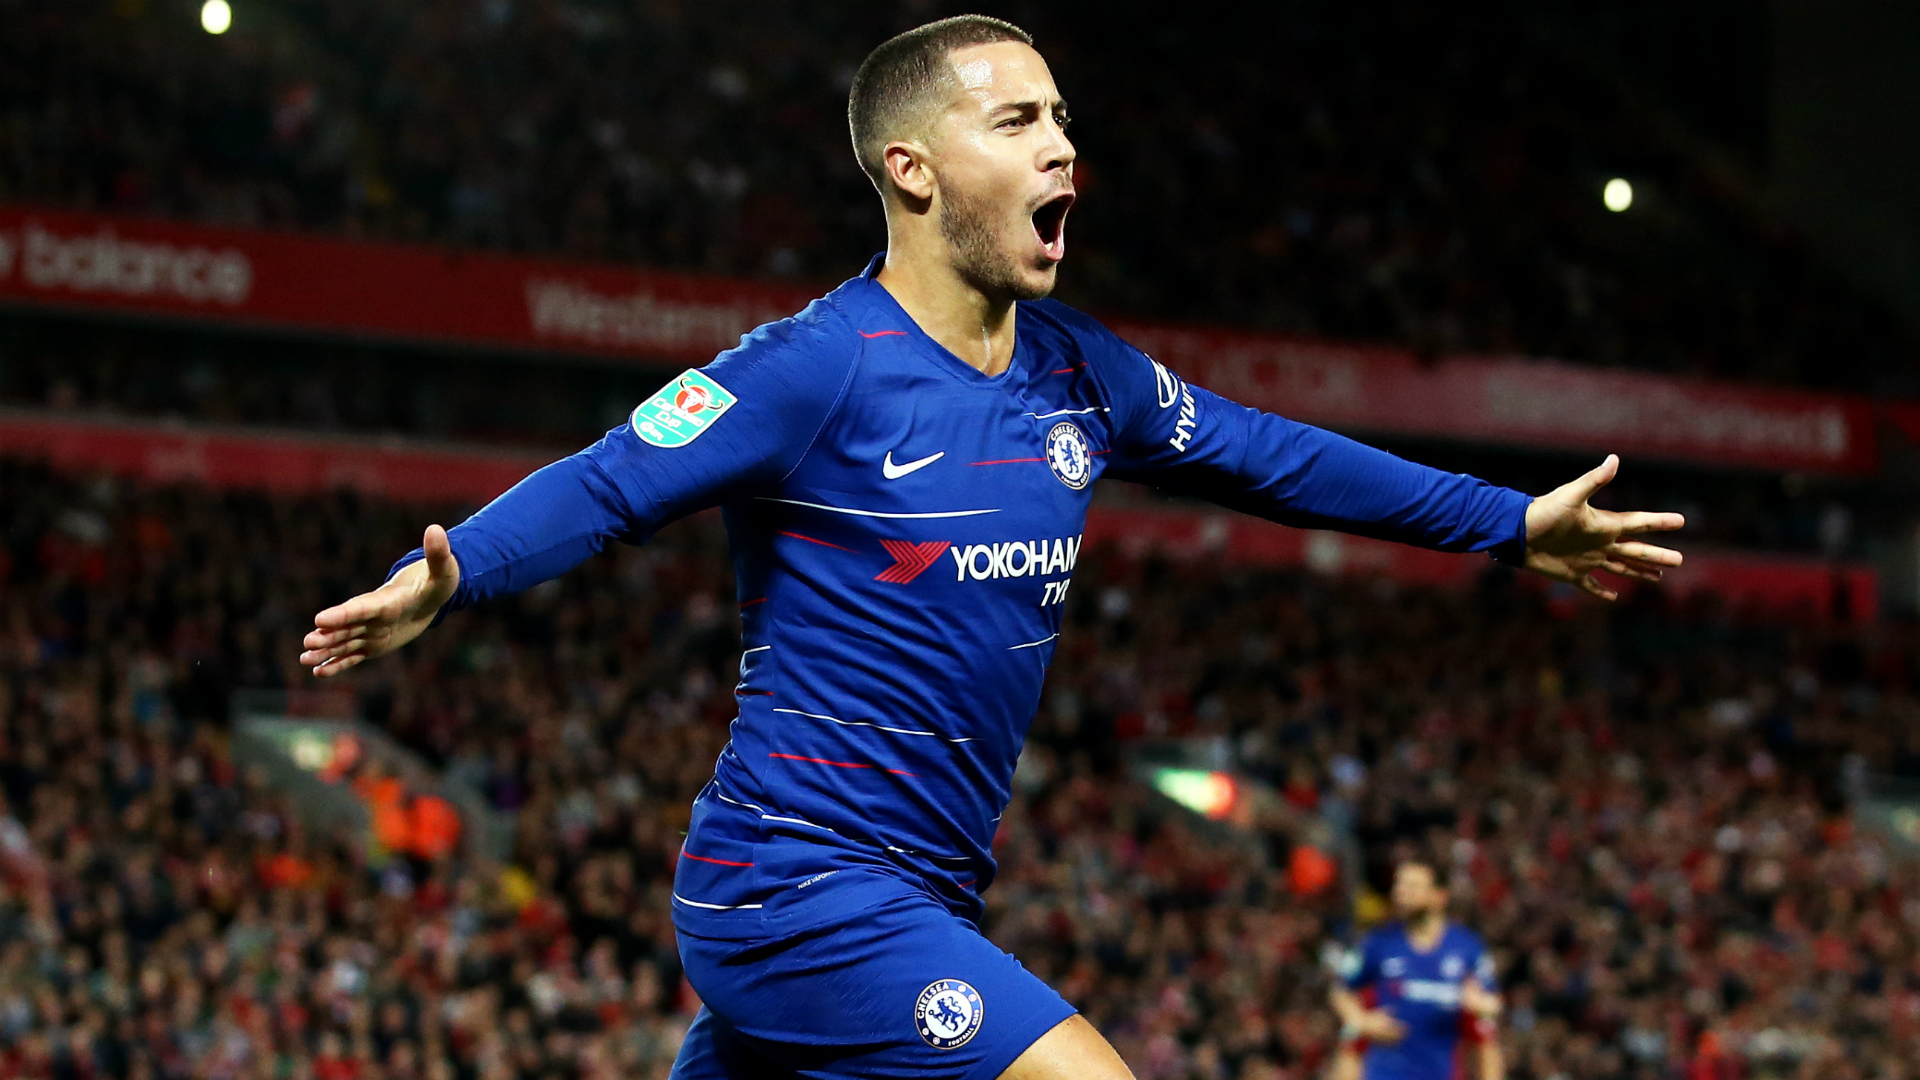 Hazard sidelined with back injury, Sarri confirms